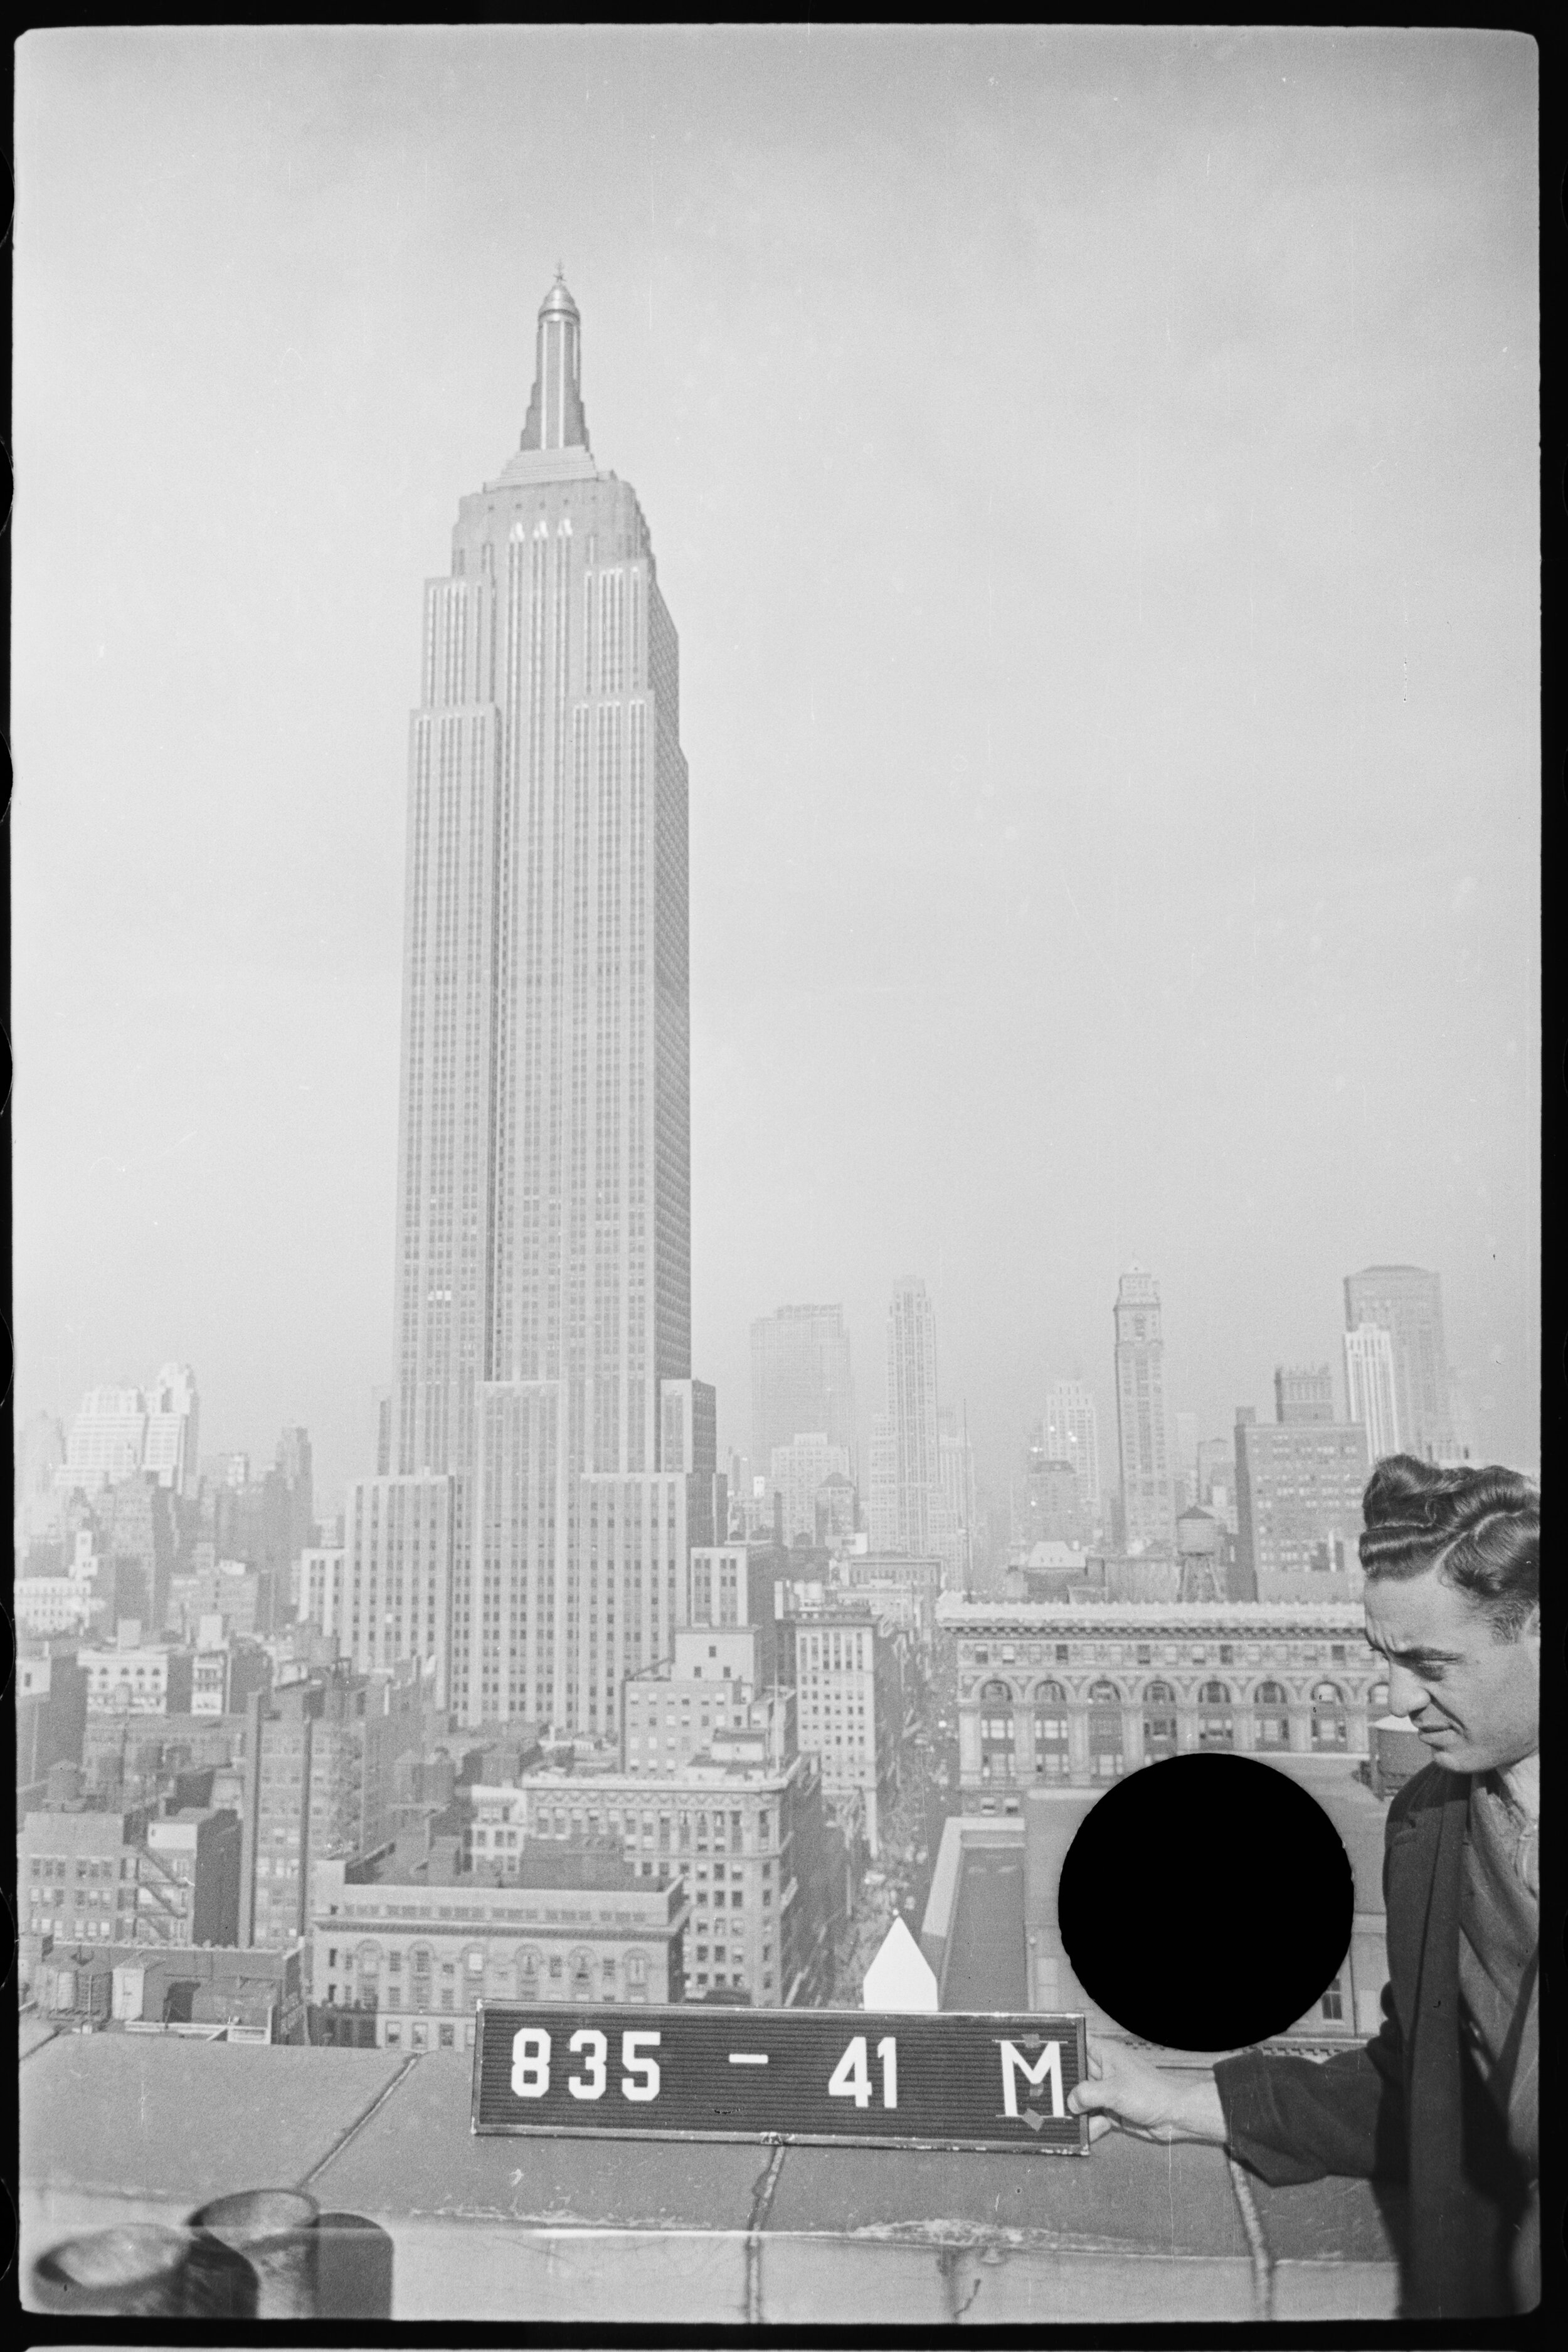 The Empire State Building as it was in 1940, with a much shorter midtown. Department of Finance Tax Photo Collection.